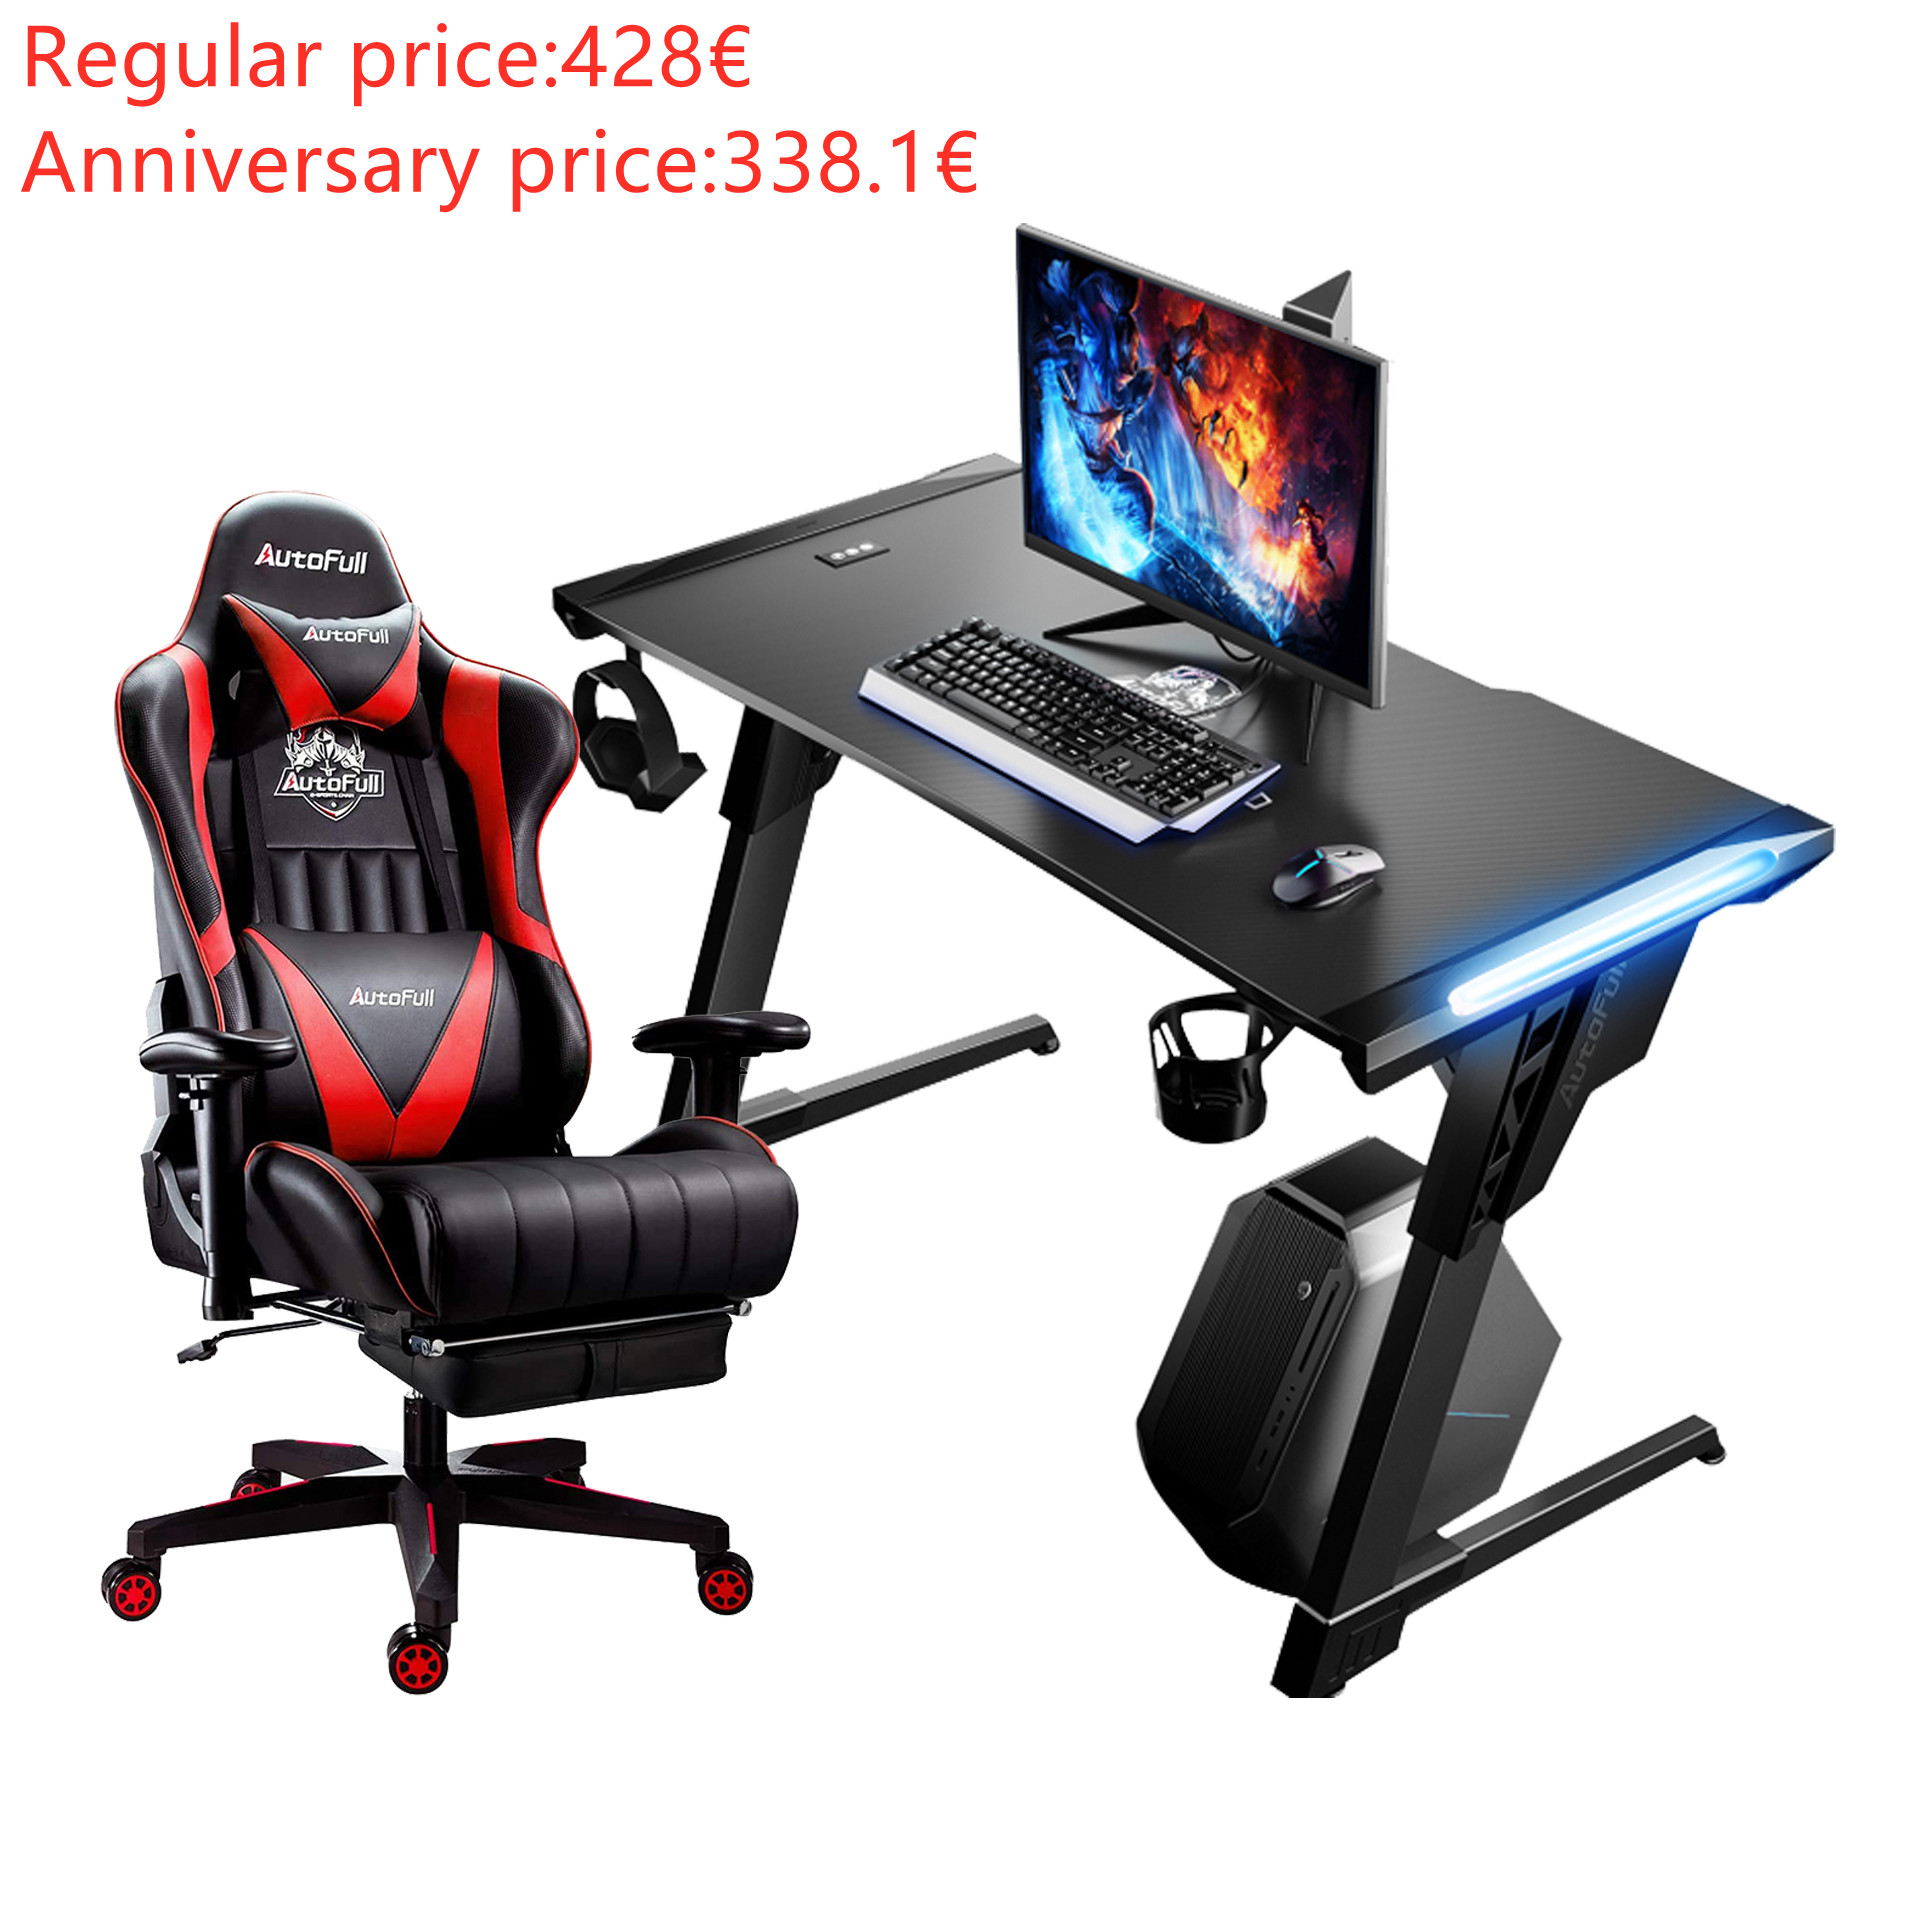 Autofull AF070DPUJ/BPUJ+AFDJZ004B Gaming Chair and Desk Combo